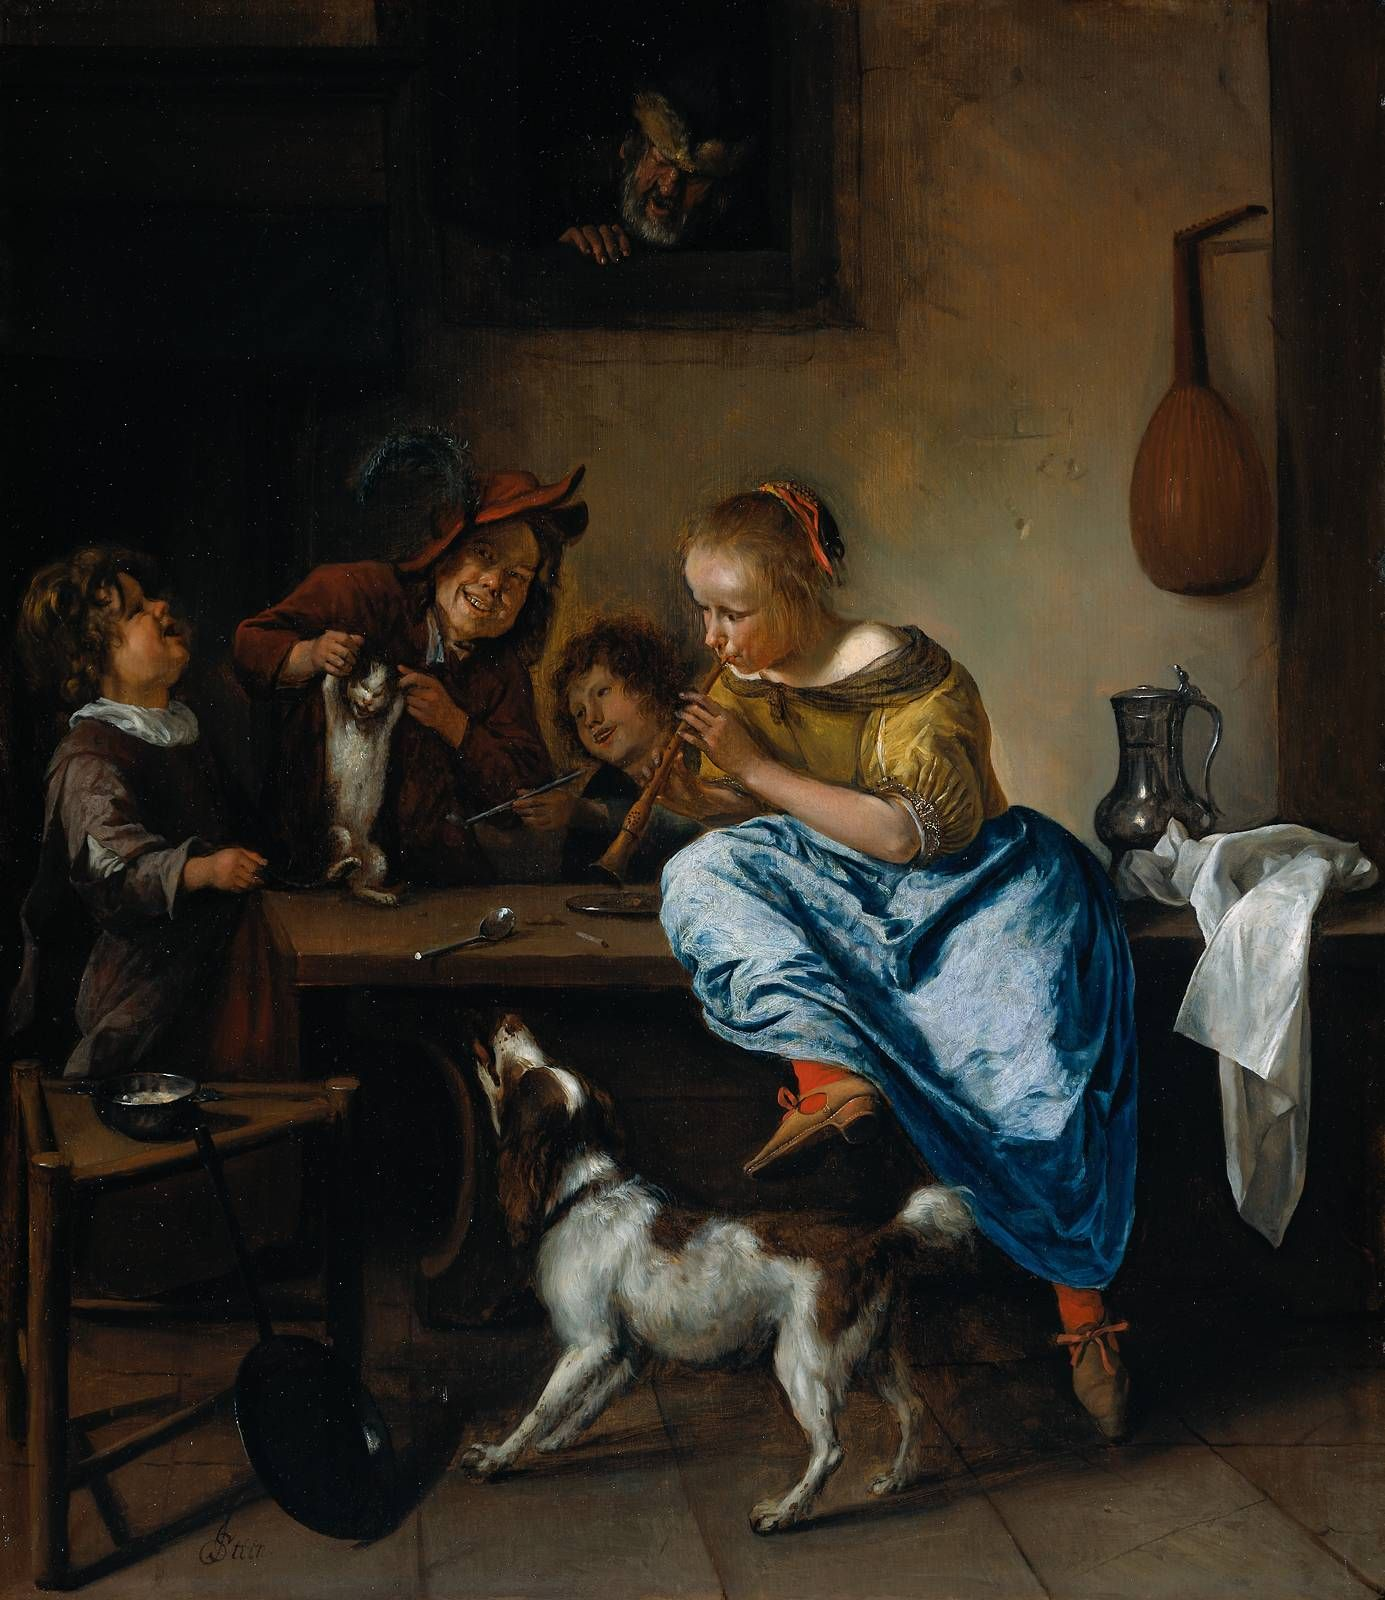 """Jan Steen, Children Teaching a Cat to Dance, also known as """"The Dancing Lesson,"""" c. 1665-1668, oil on panel, 68 cm x 59 cm, held by Rijkmuseum, Amsterdam."""